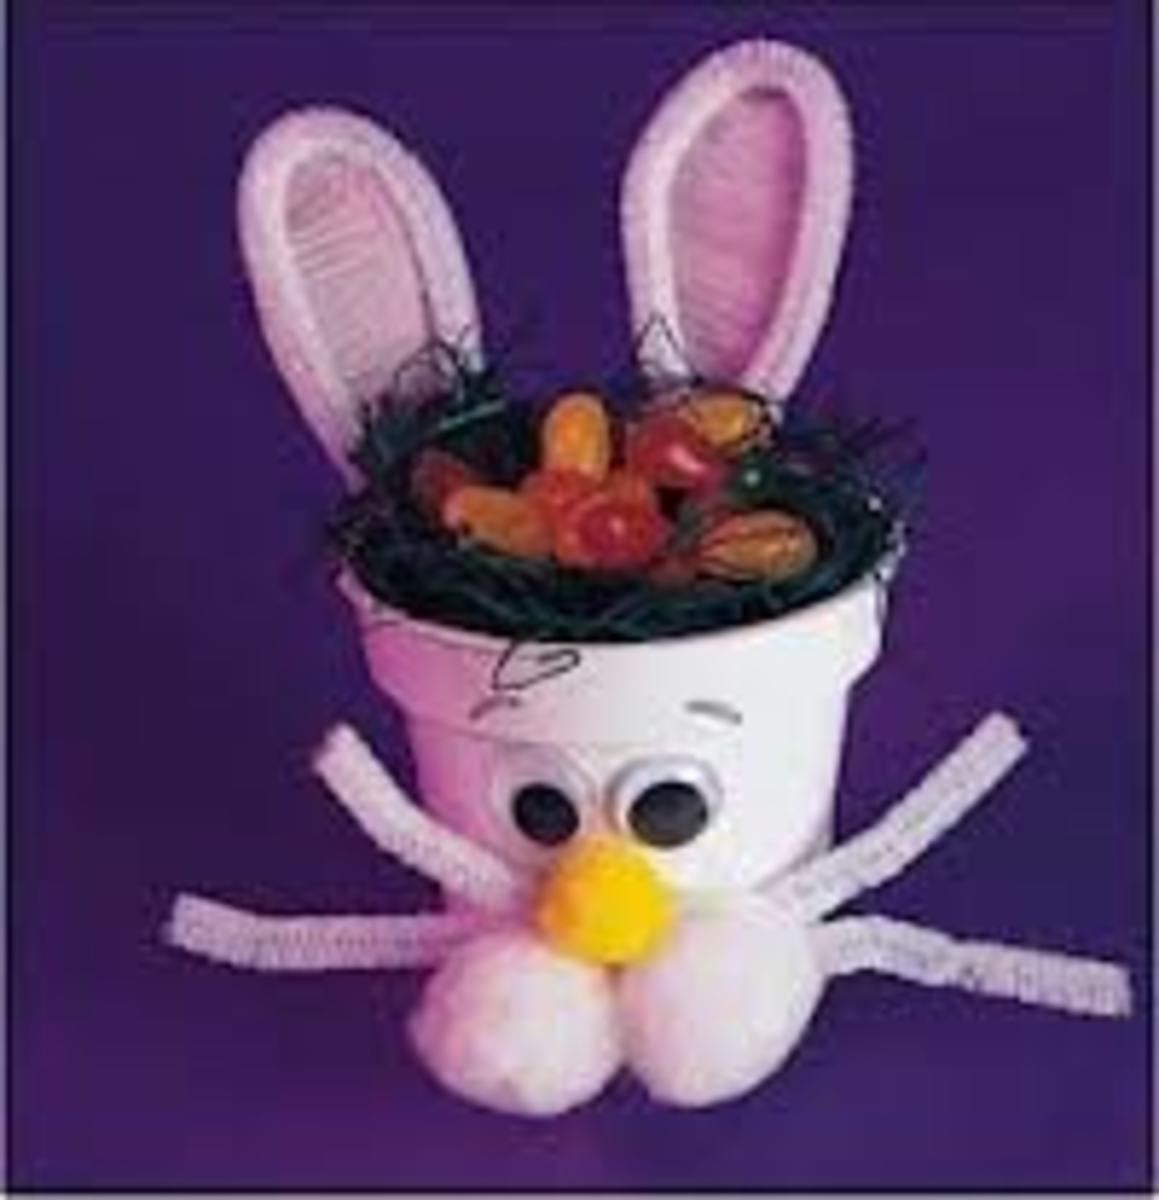 BUNNY FLOWER POT FOR EASTER - SIMPLY ADD POM-POMS, PIPE-CLEANERS, AND GOOGLE EYES.  (THERE IS ALSO A WHITE POM-POM COTTON-TAIL, IN THE BACK)!